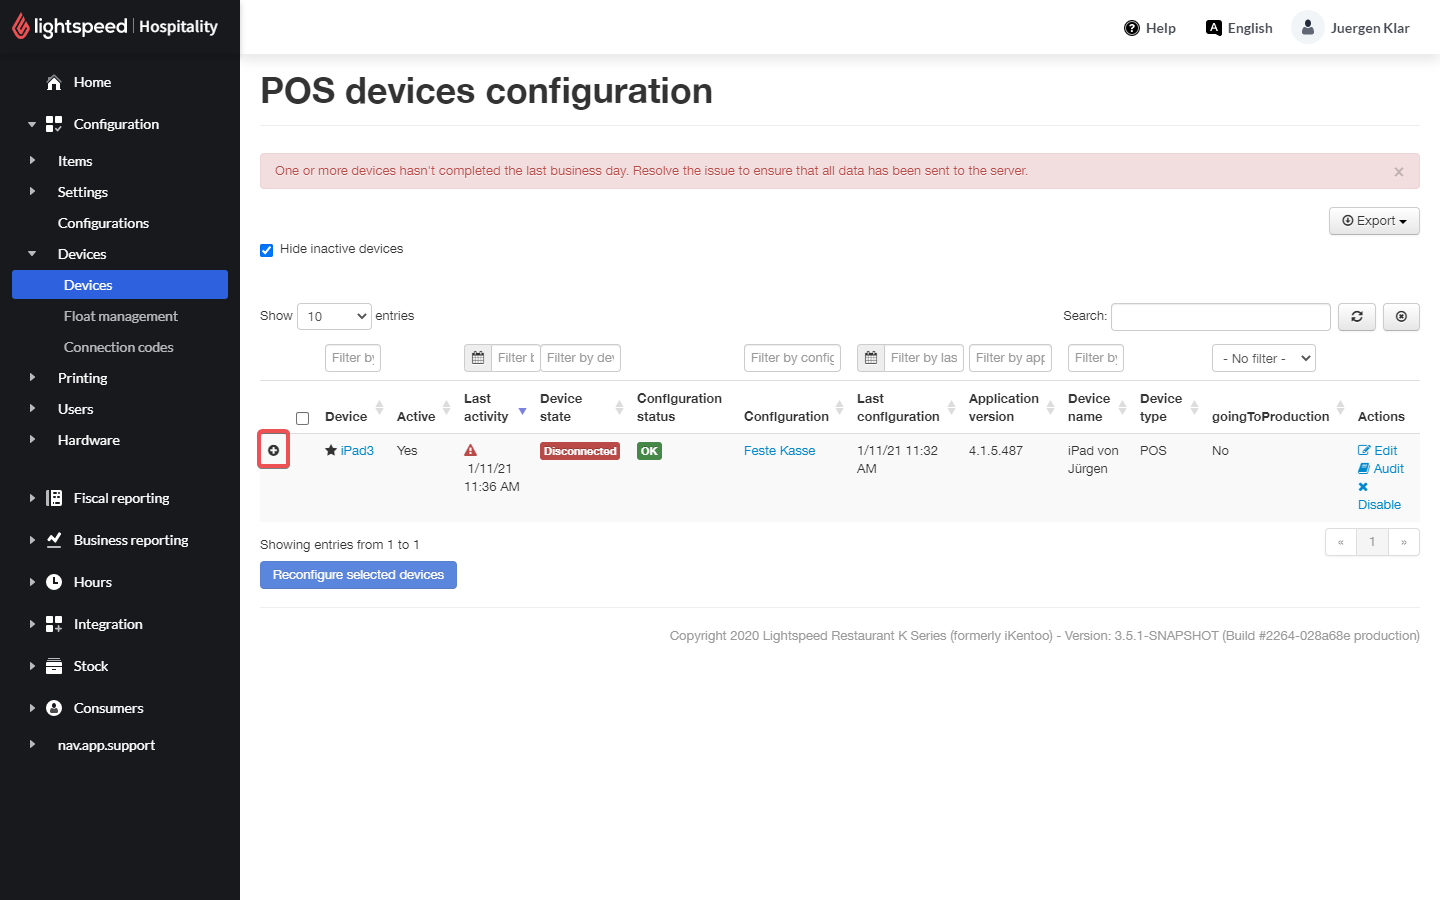 kseries-configuration-devices-devices-detailed_device_information.png